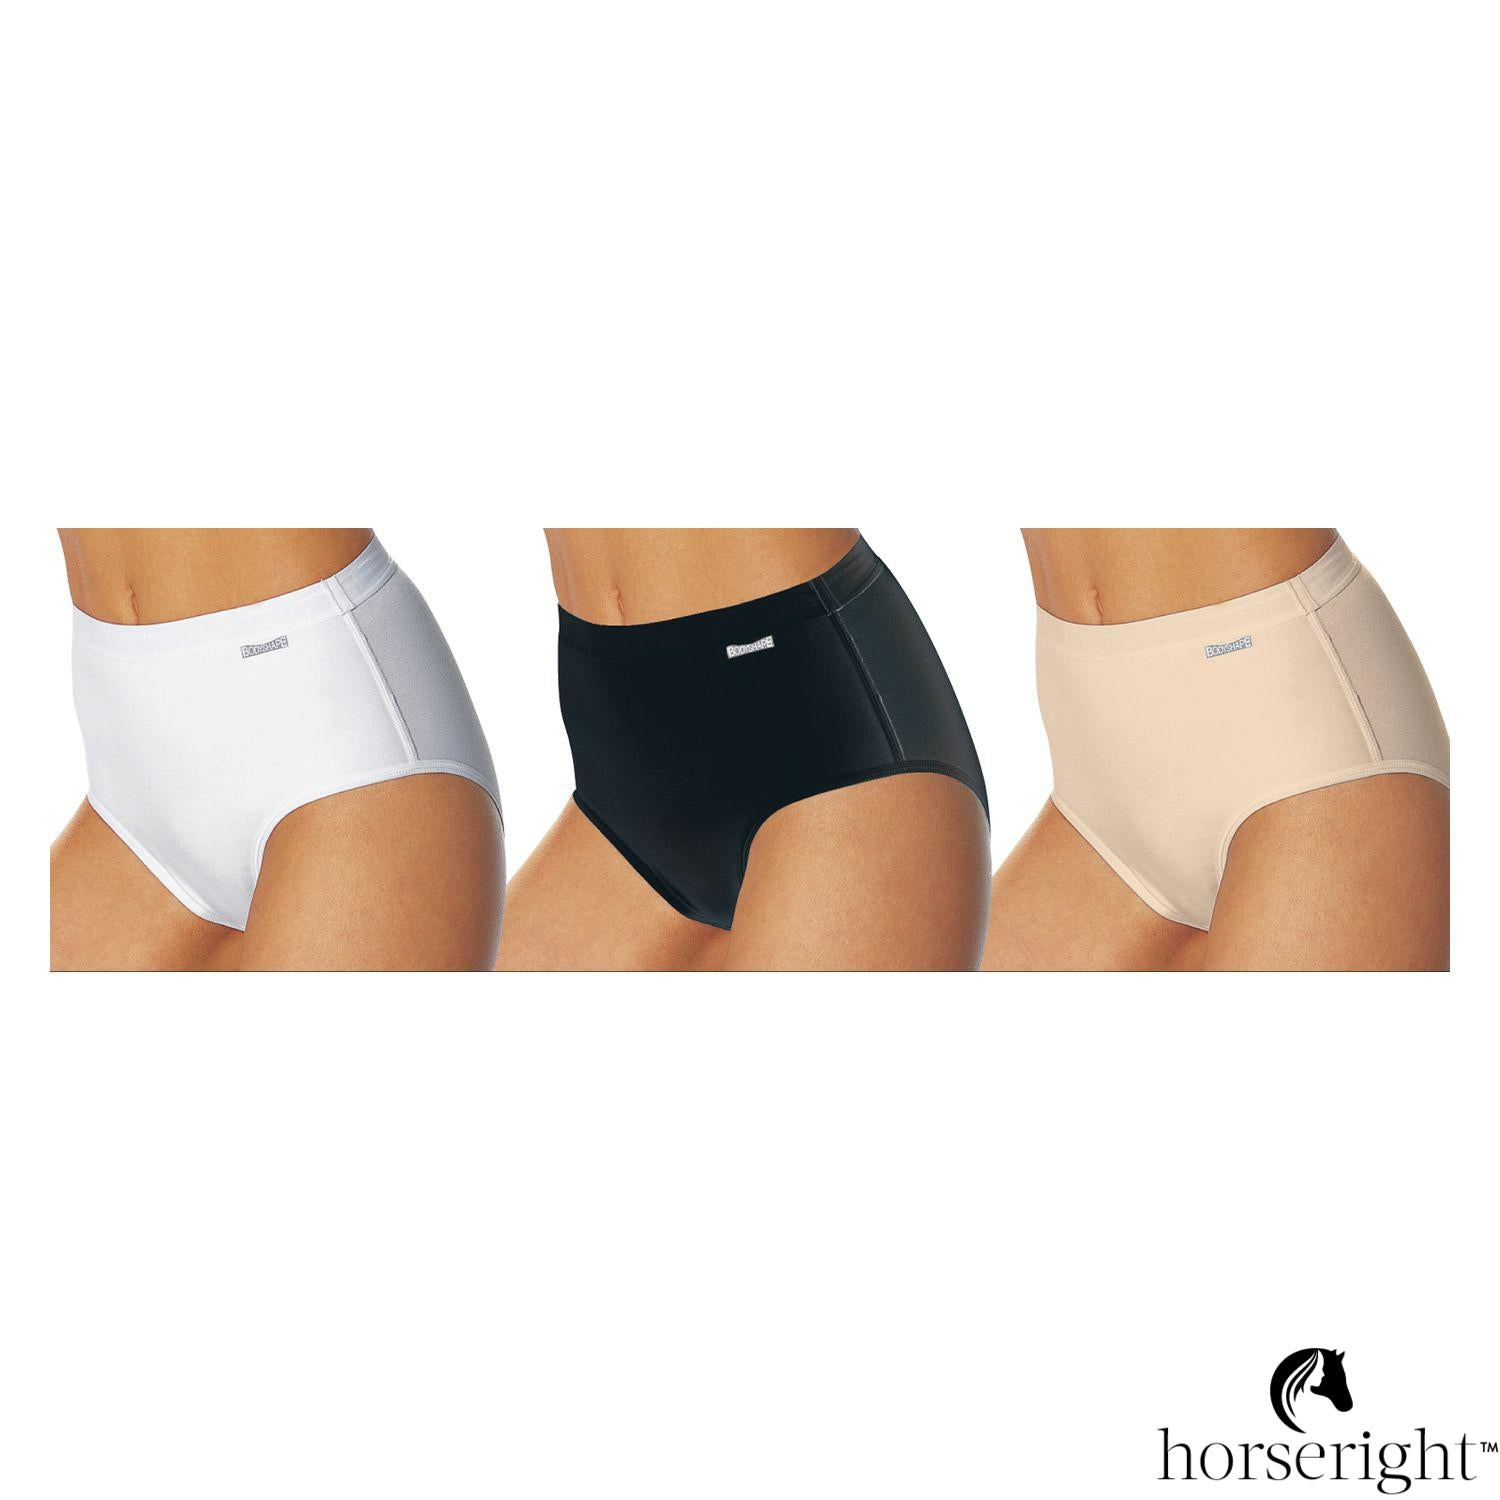 Scholler Women's Bodyshape Briefs